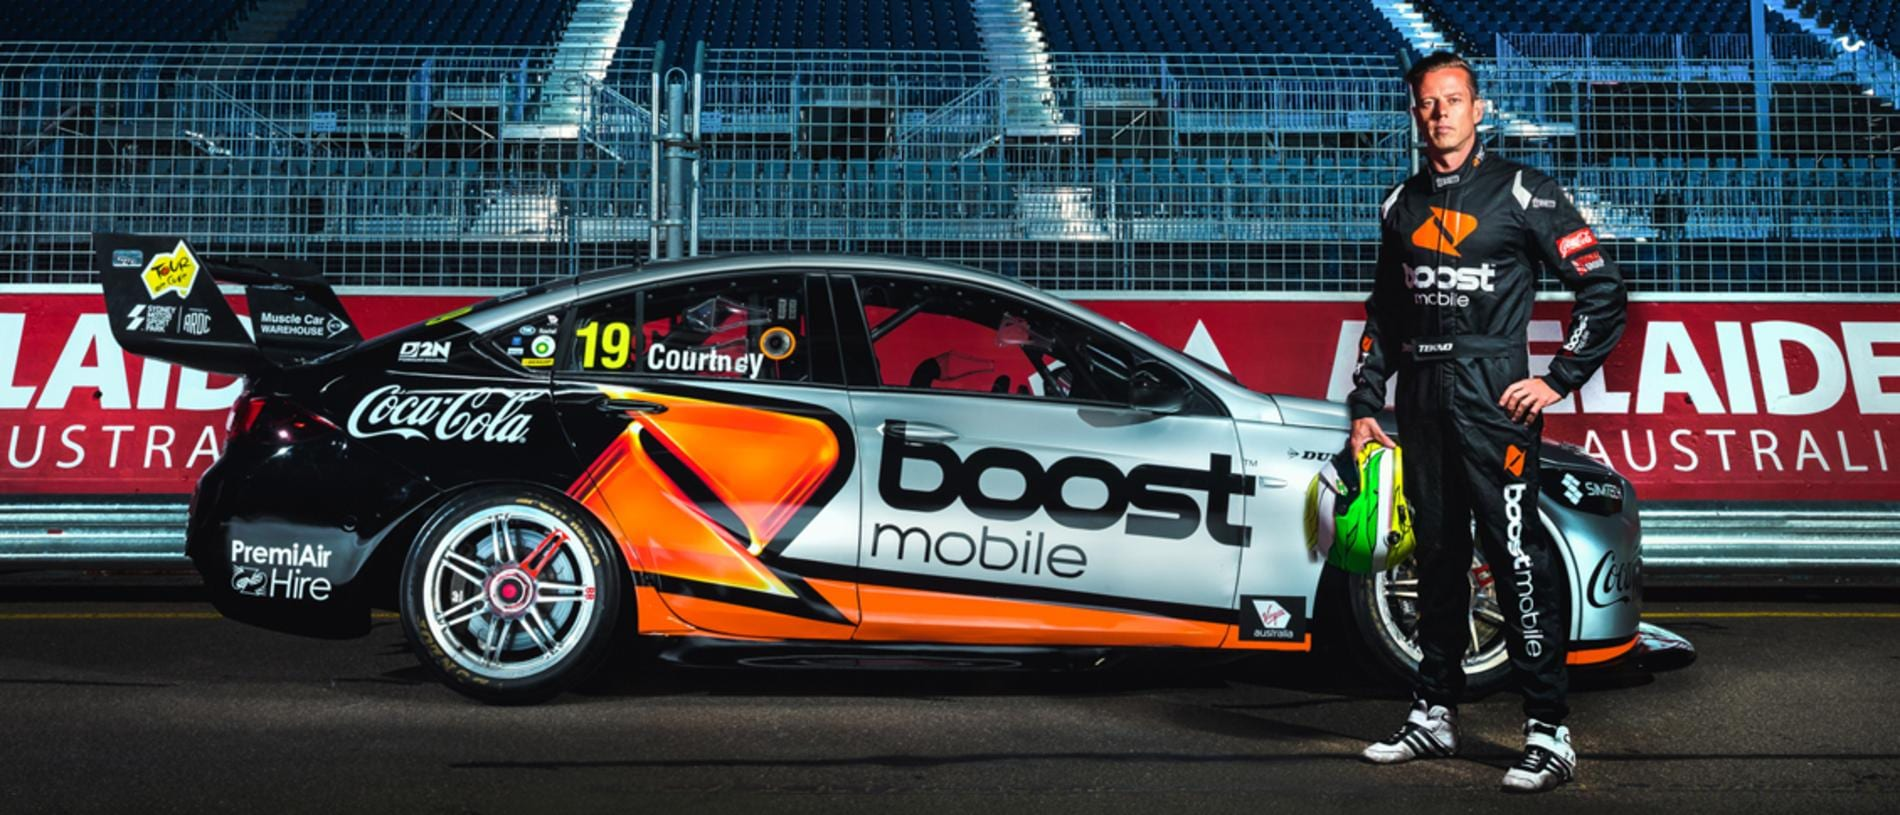 Could James Courtney and Boost return for Erebus? Pic: Daniel Kalisz